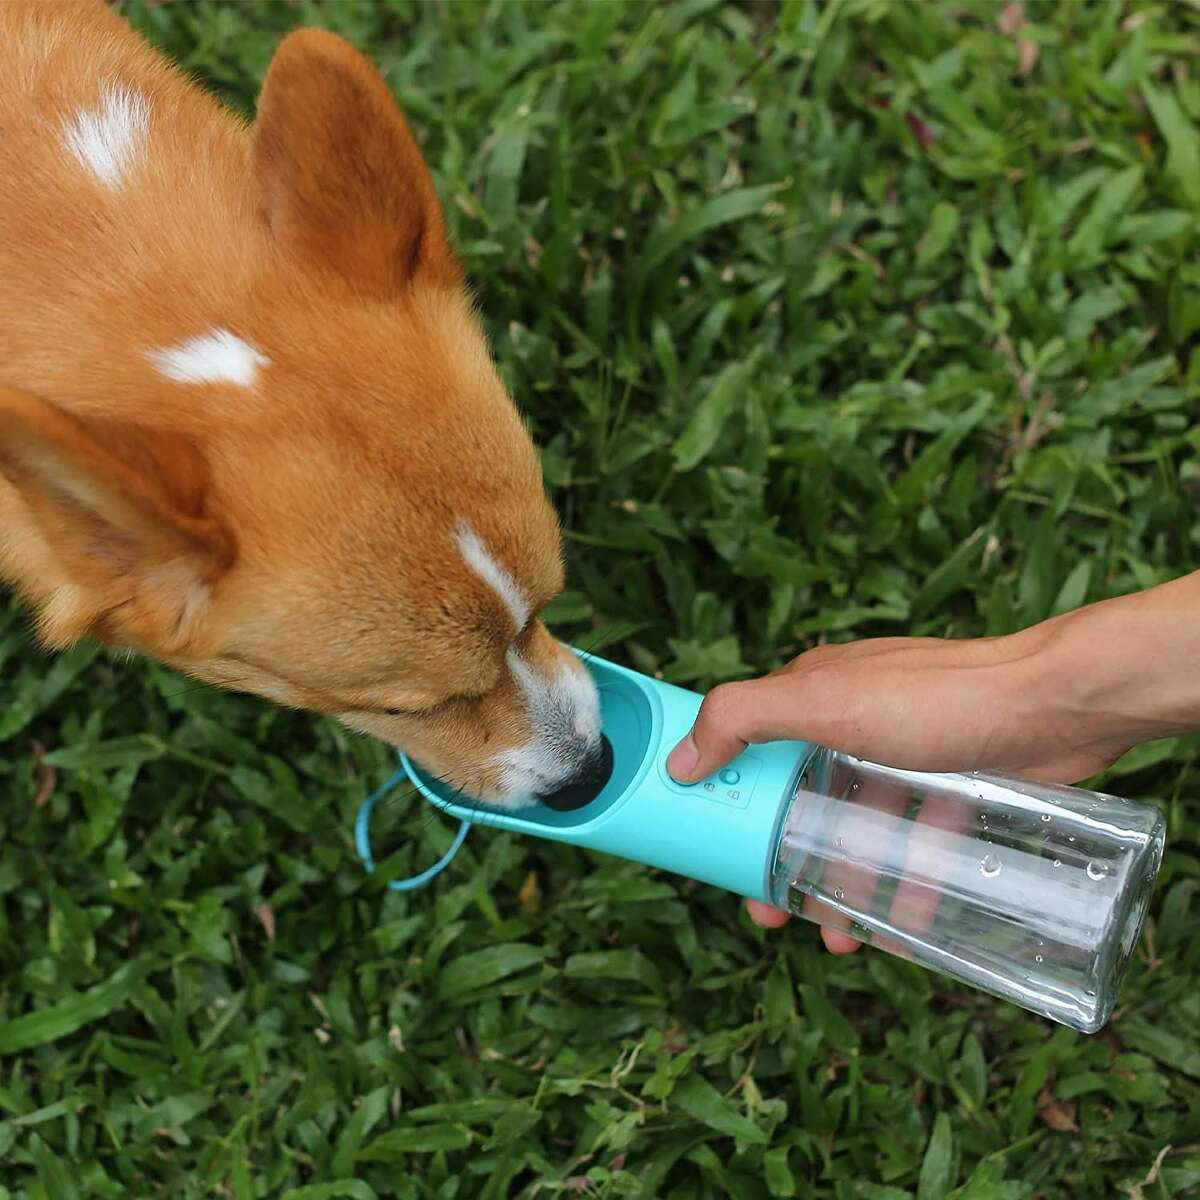 This Water Bottle Is Perfect for Pet Parents : Amazon is selling a pet water bottle that's designed to keep dogs hydrated during walks, car rides, and other activities on the go.